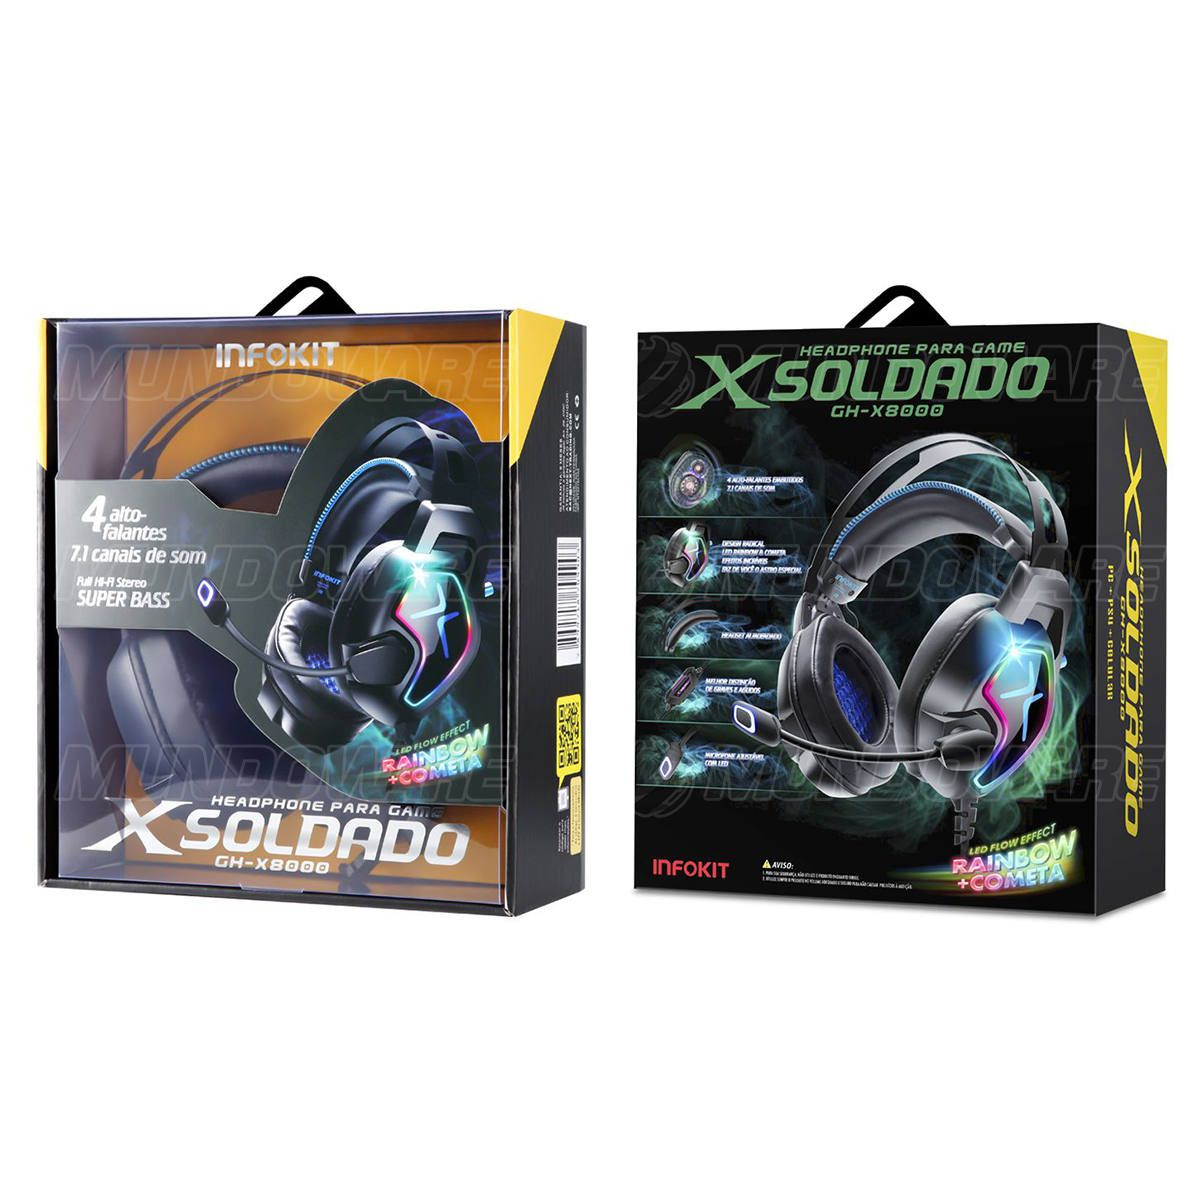 Headphone Gamer 4 Alto-falantes 7.1 Surround Super Bass Quadriplo Microfone Anti-Ruído p/ PC PS4 Celular XSoldado X8000